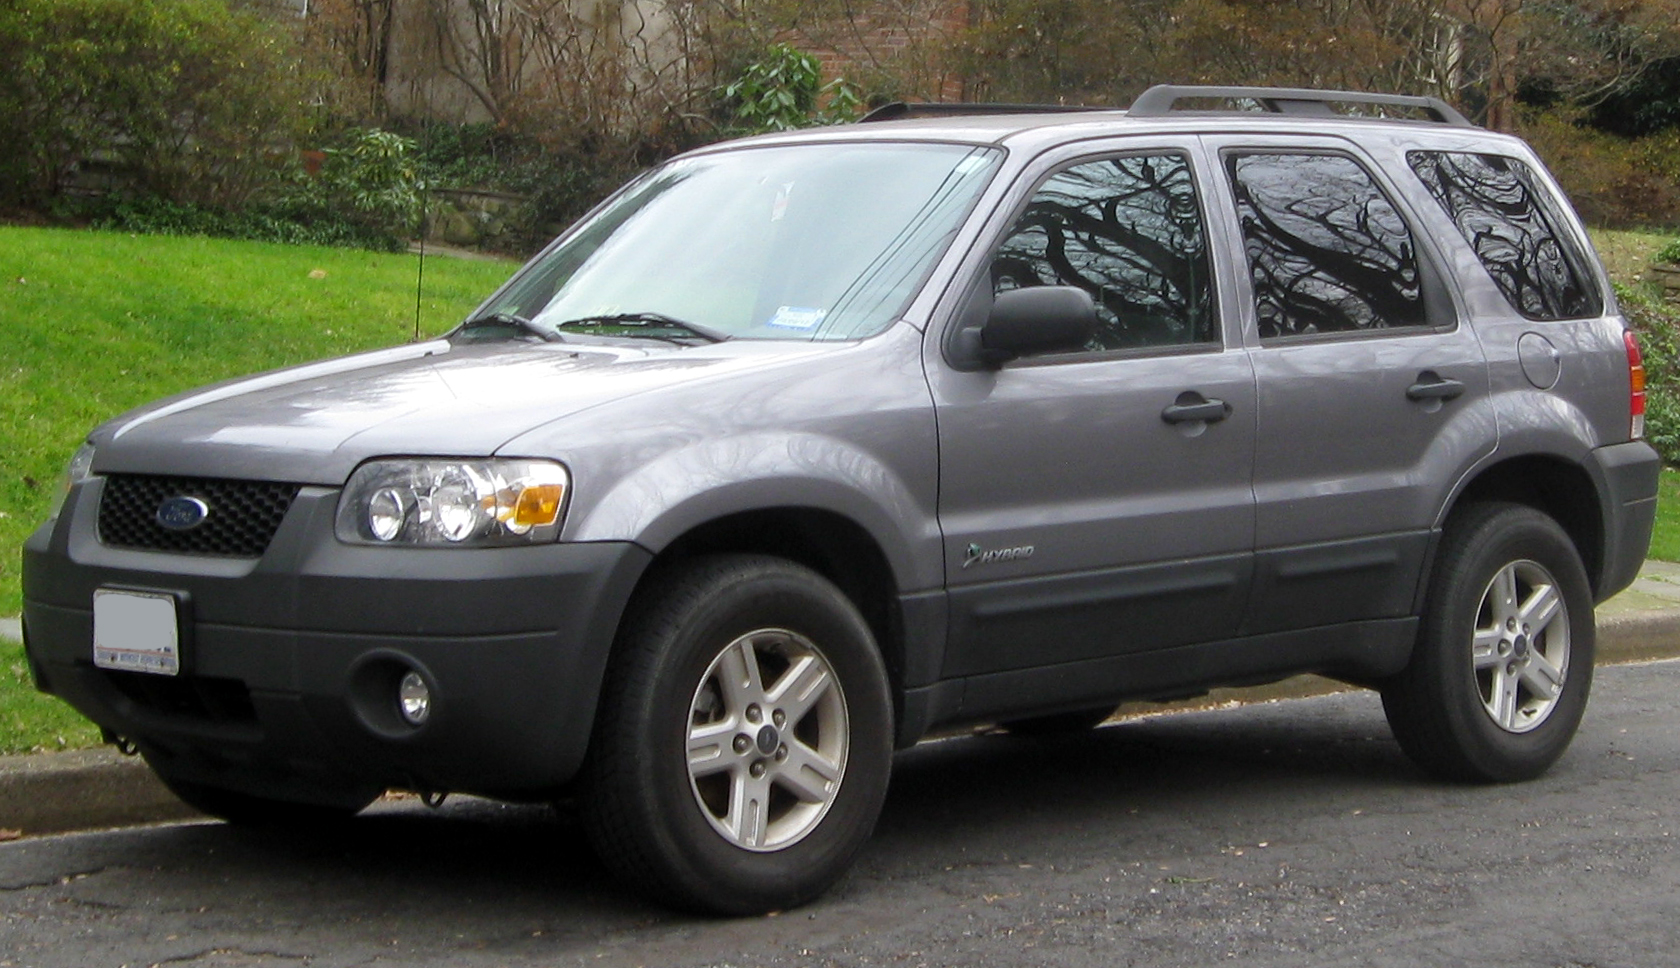 File20052007 Ford Escape Hybrid  01012012jpg  Wikimedia